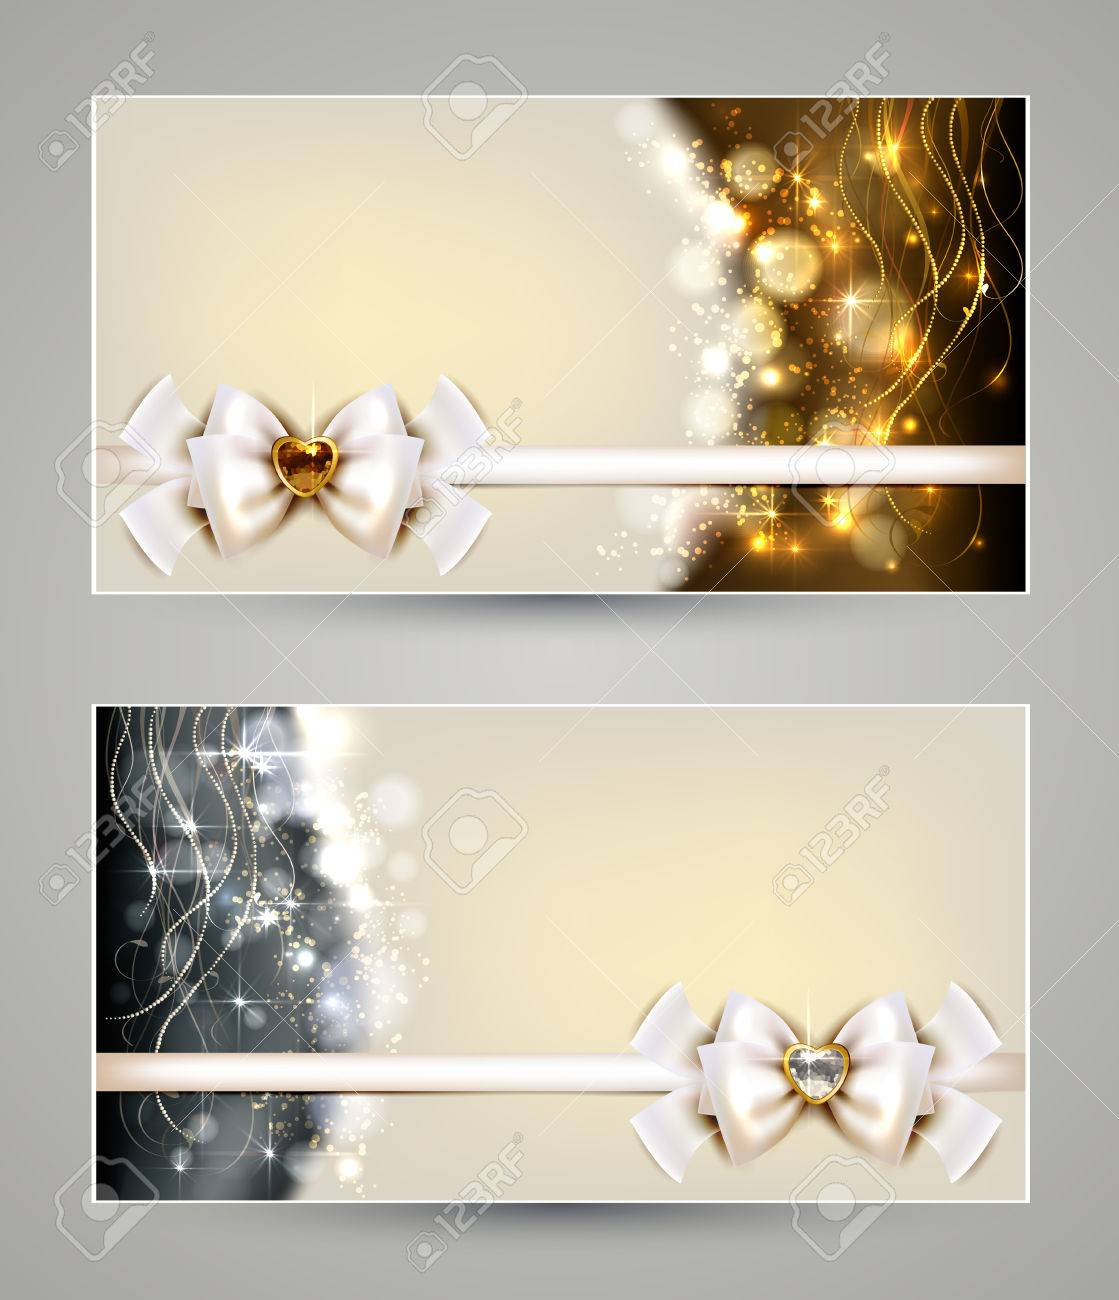 Two Elegant Christmas Greeting Cards With Bow And Jewelry Royalty